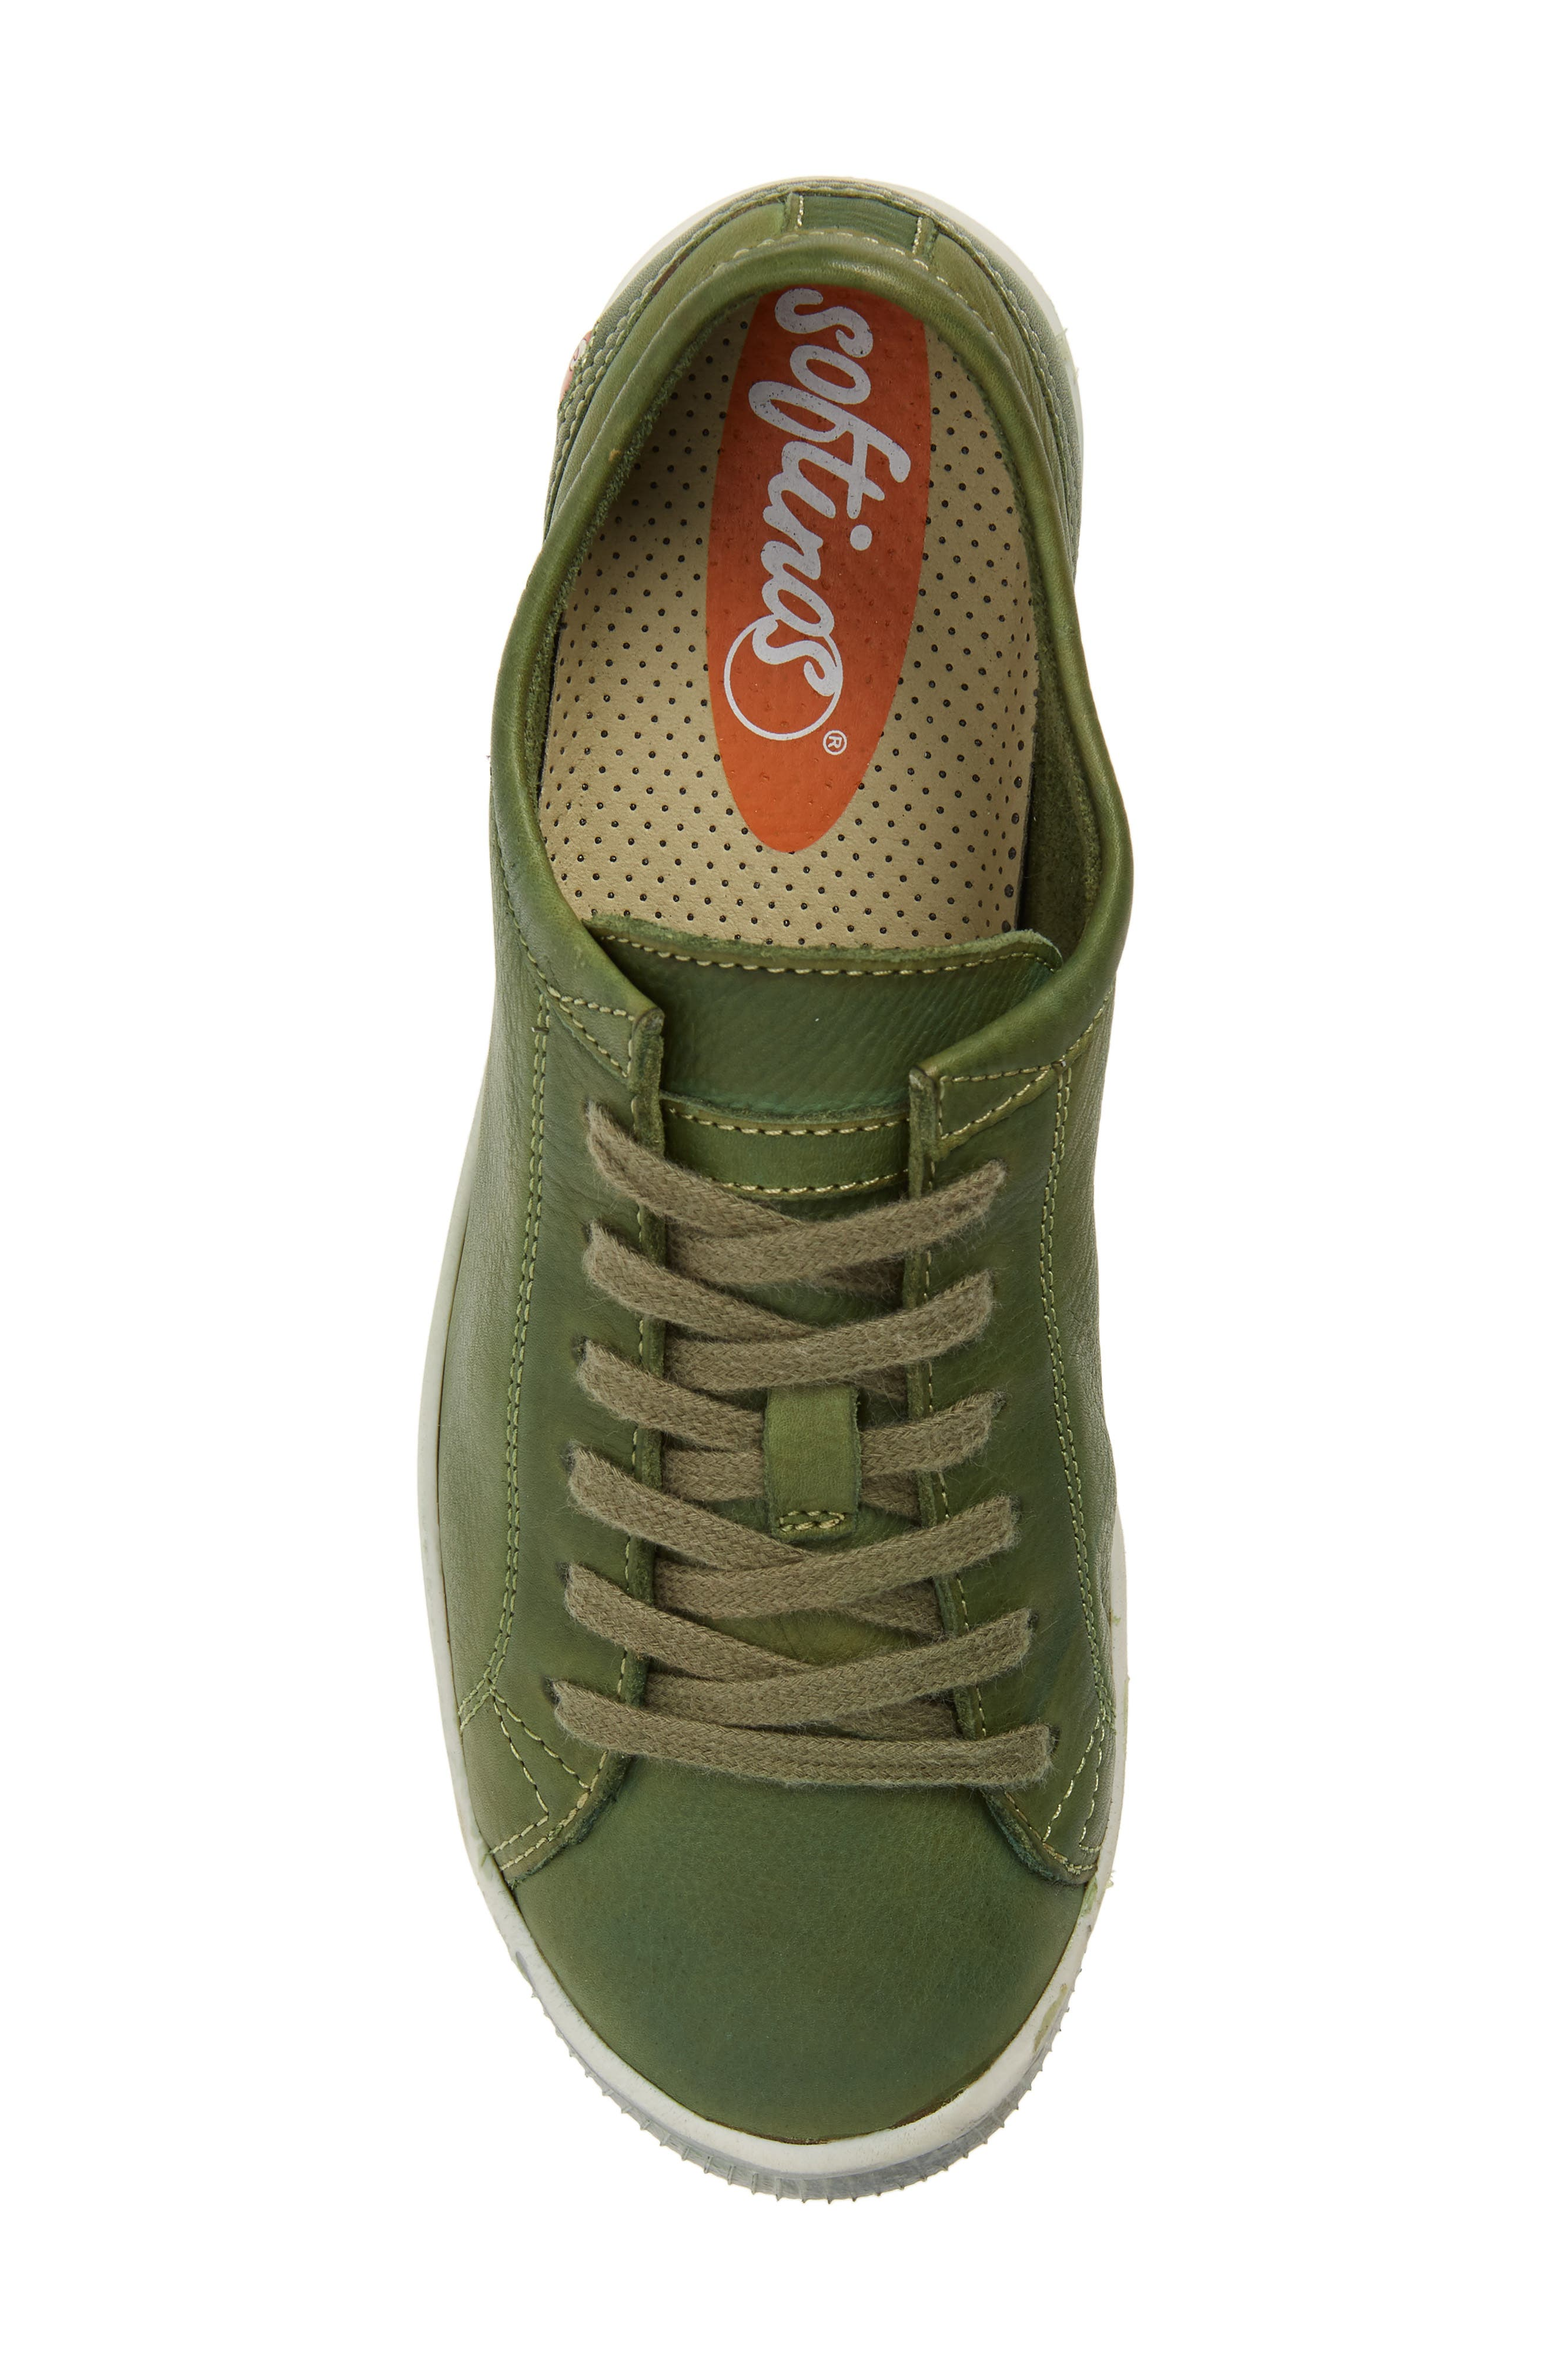 Isla Distressed Sneaker,                             Alternate thumbnail 4, color,                             Forest Green Washed Leather